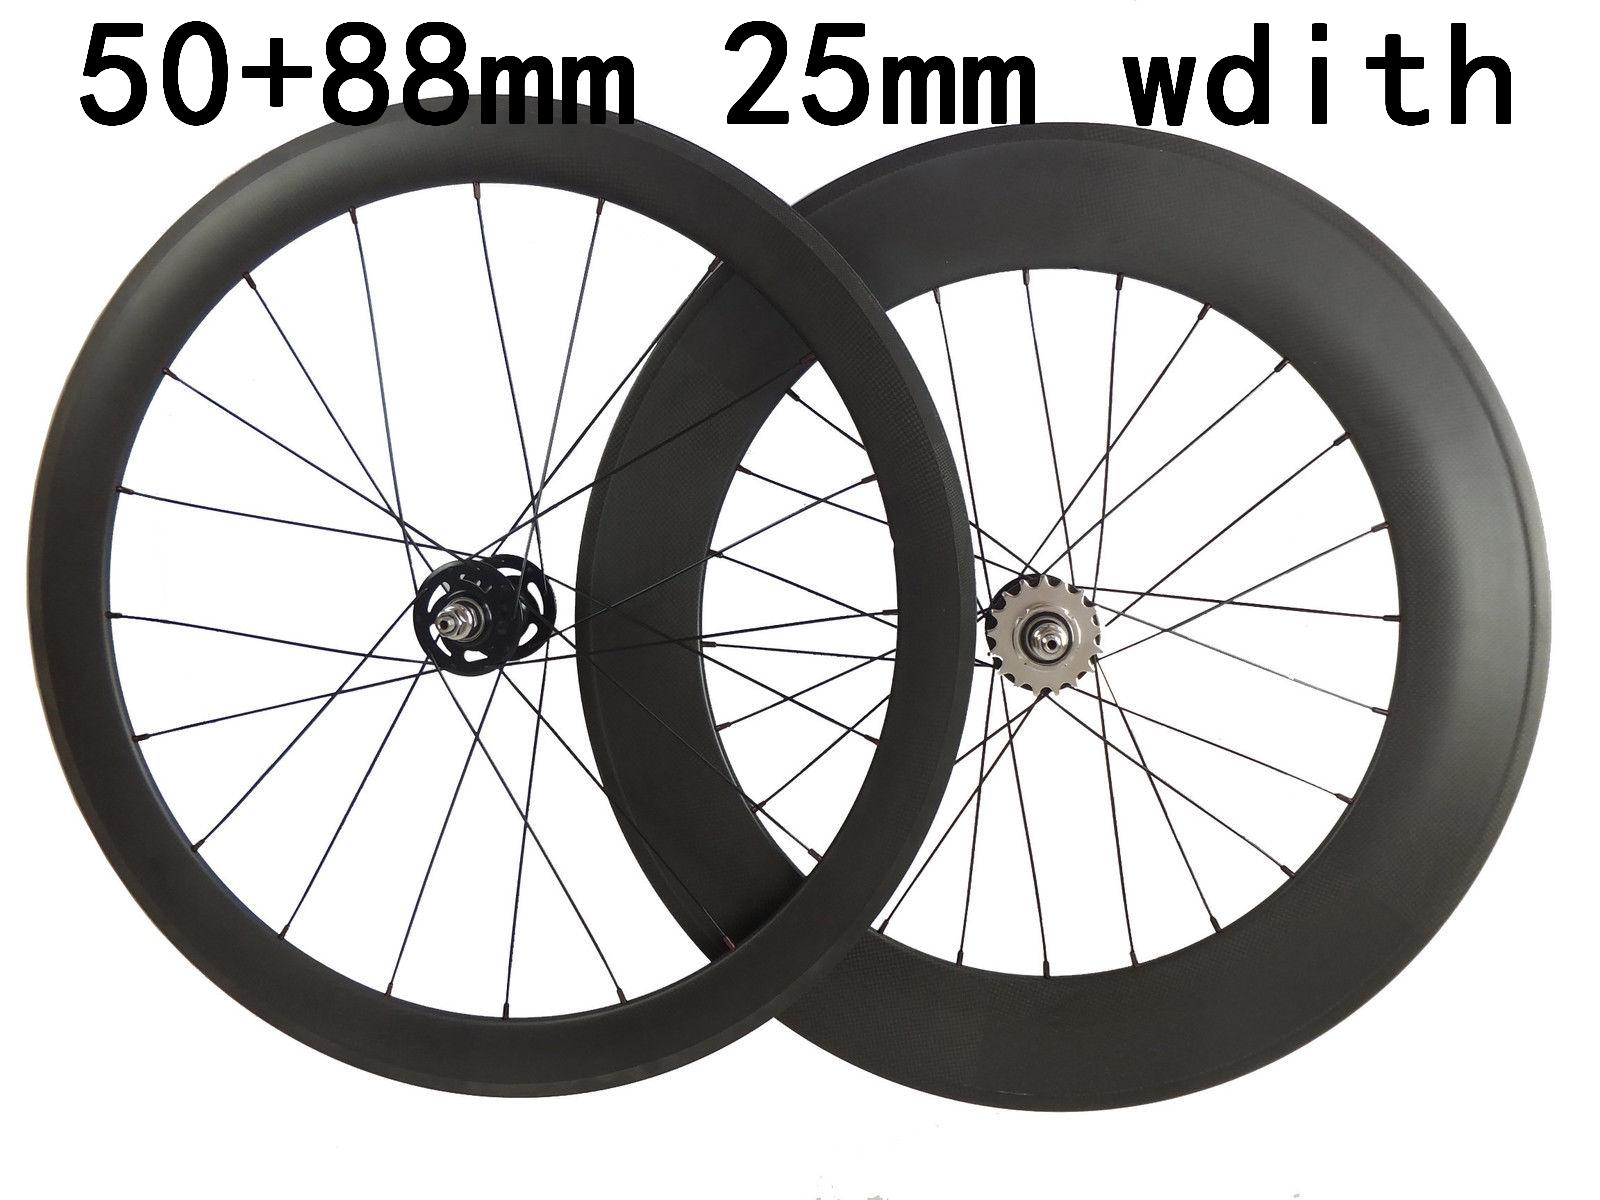 carbon track clincher bike wheel 88mm,only rear wheel,fixed gear,32 holes